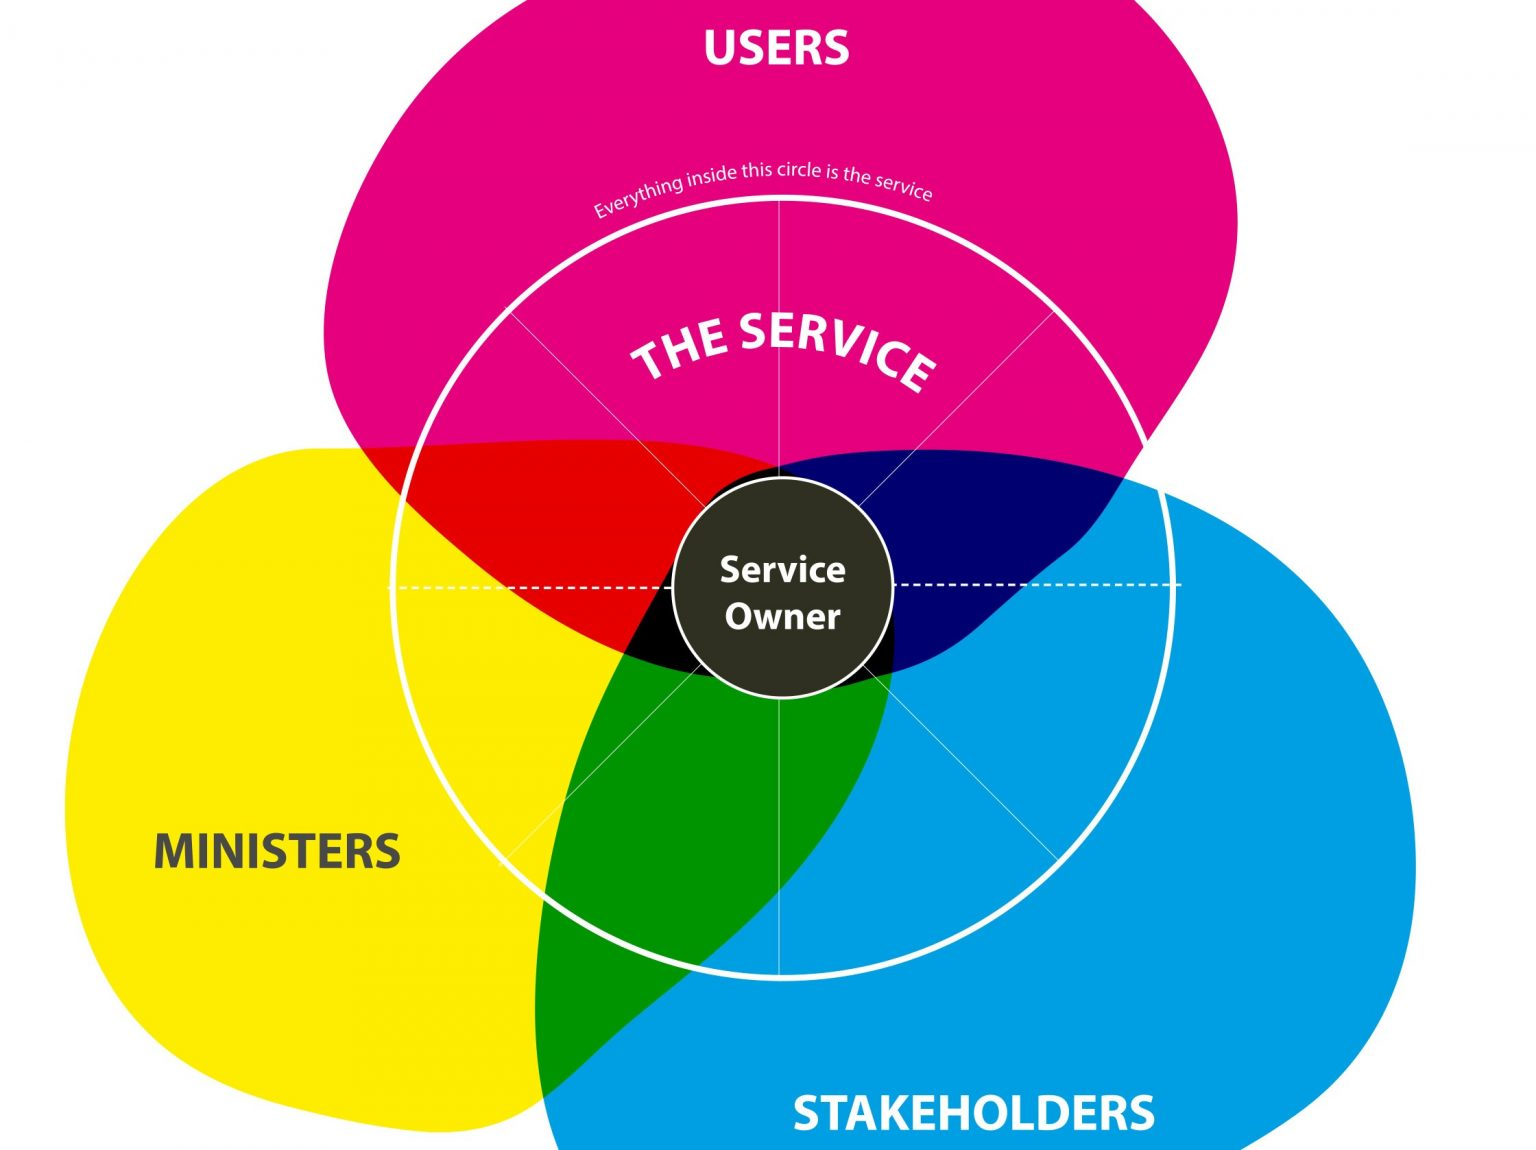 Venn diagram of what a service owner needs to design build and run a service in DfE. The three main areas are ministers, users and stakeholders with the service owner in the middle